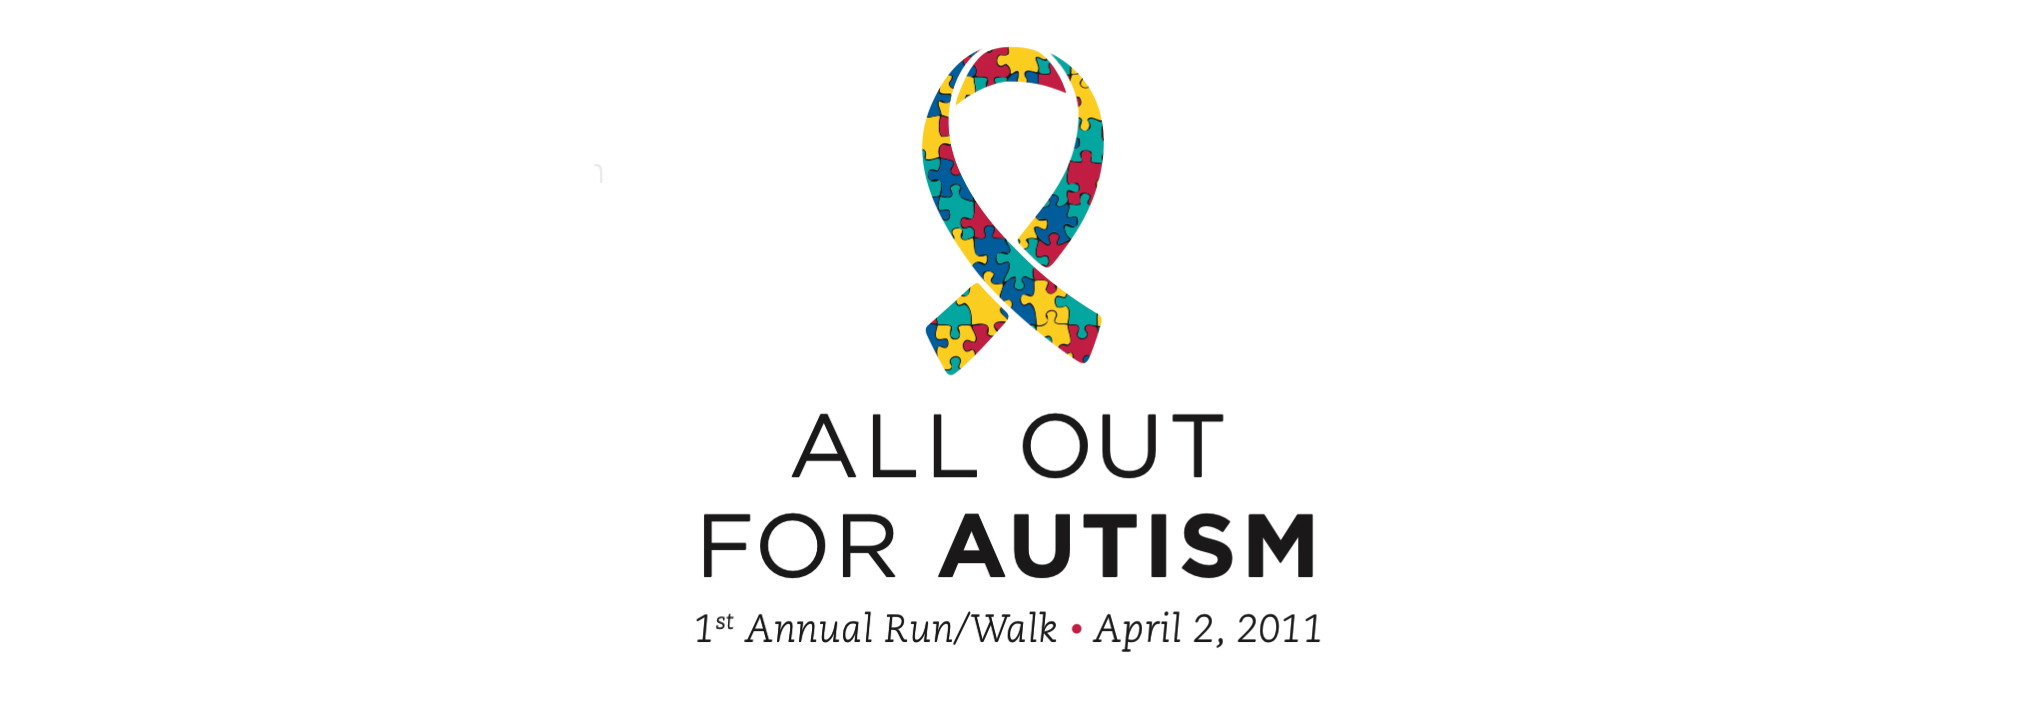 All Out for Autism Run/Walk Logo